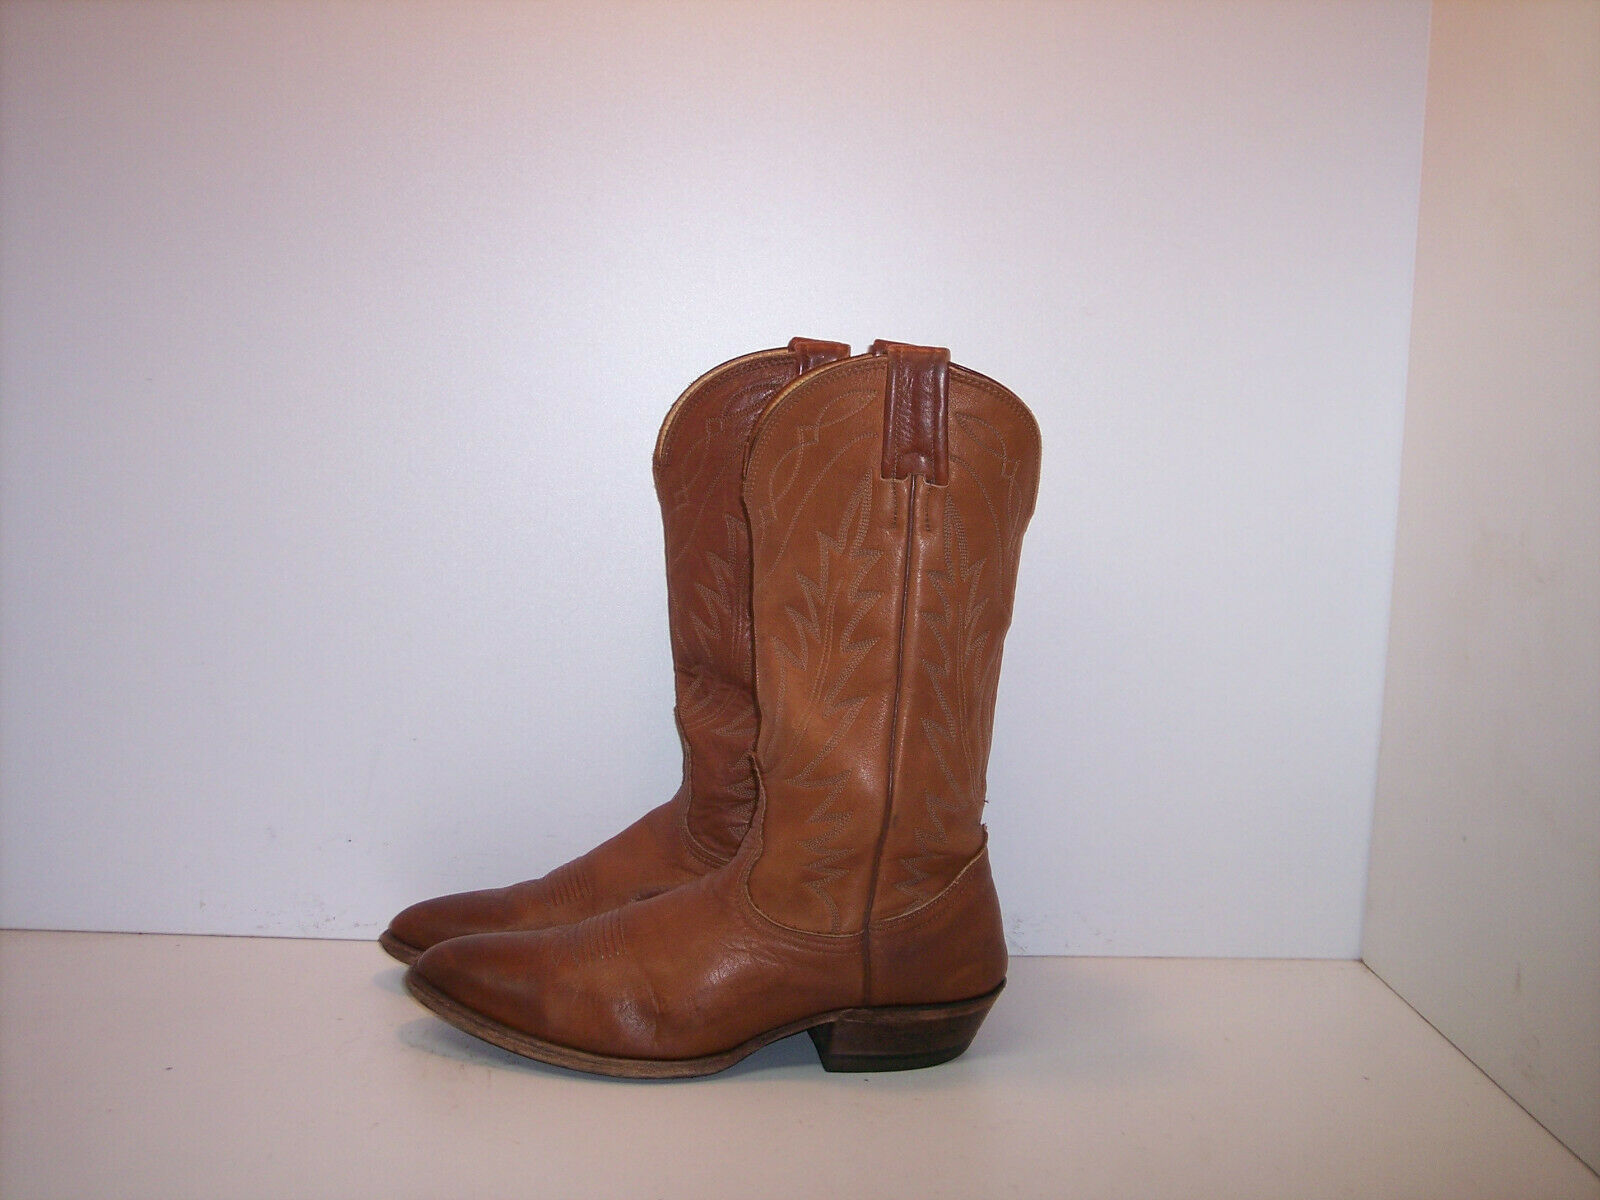 NOCONA Brown Leather Western Boots Women's Size 7.5 B